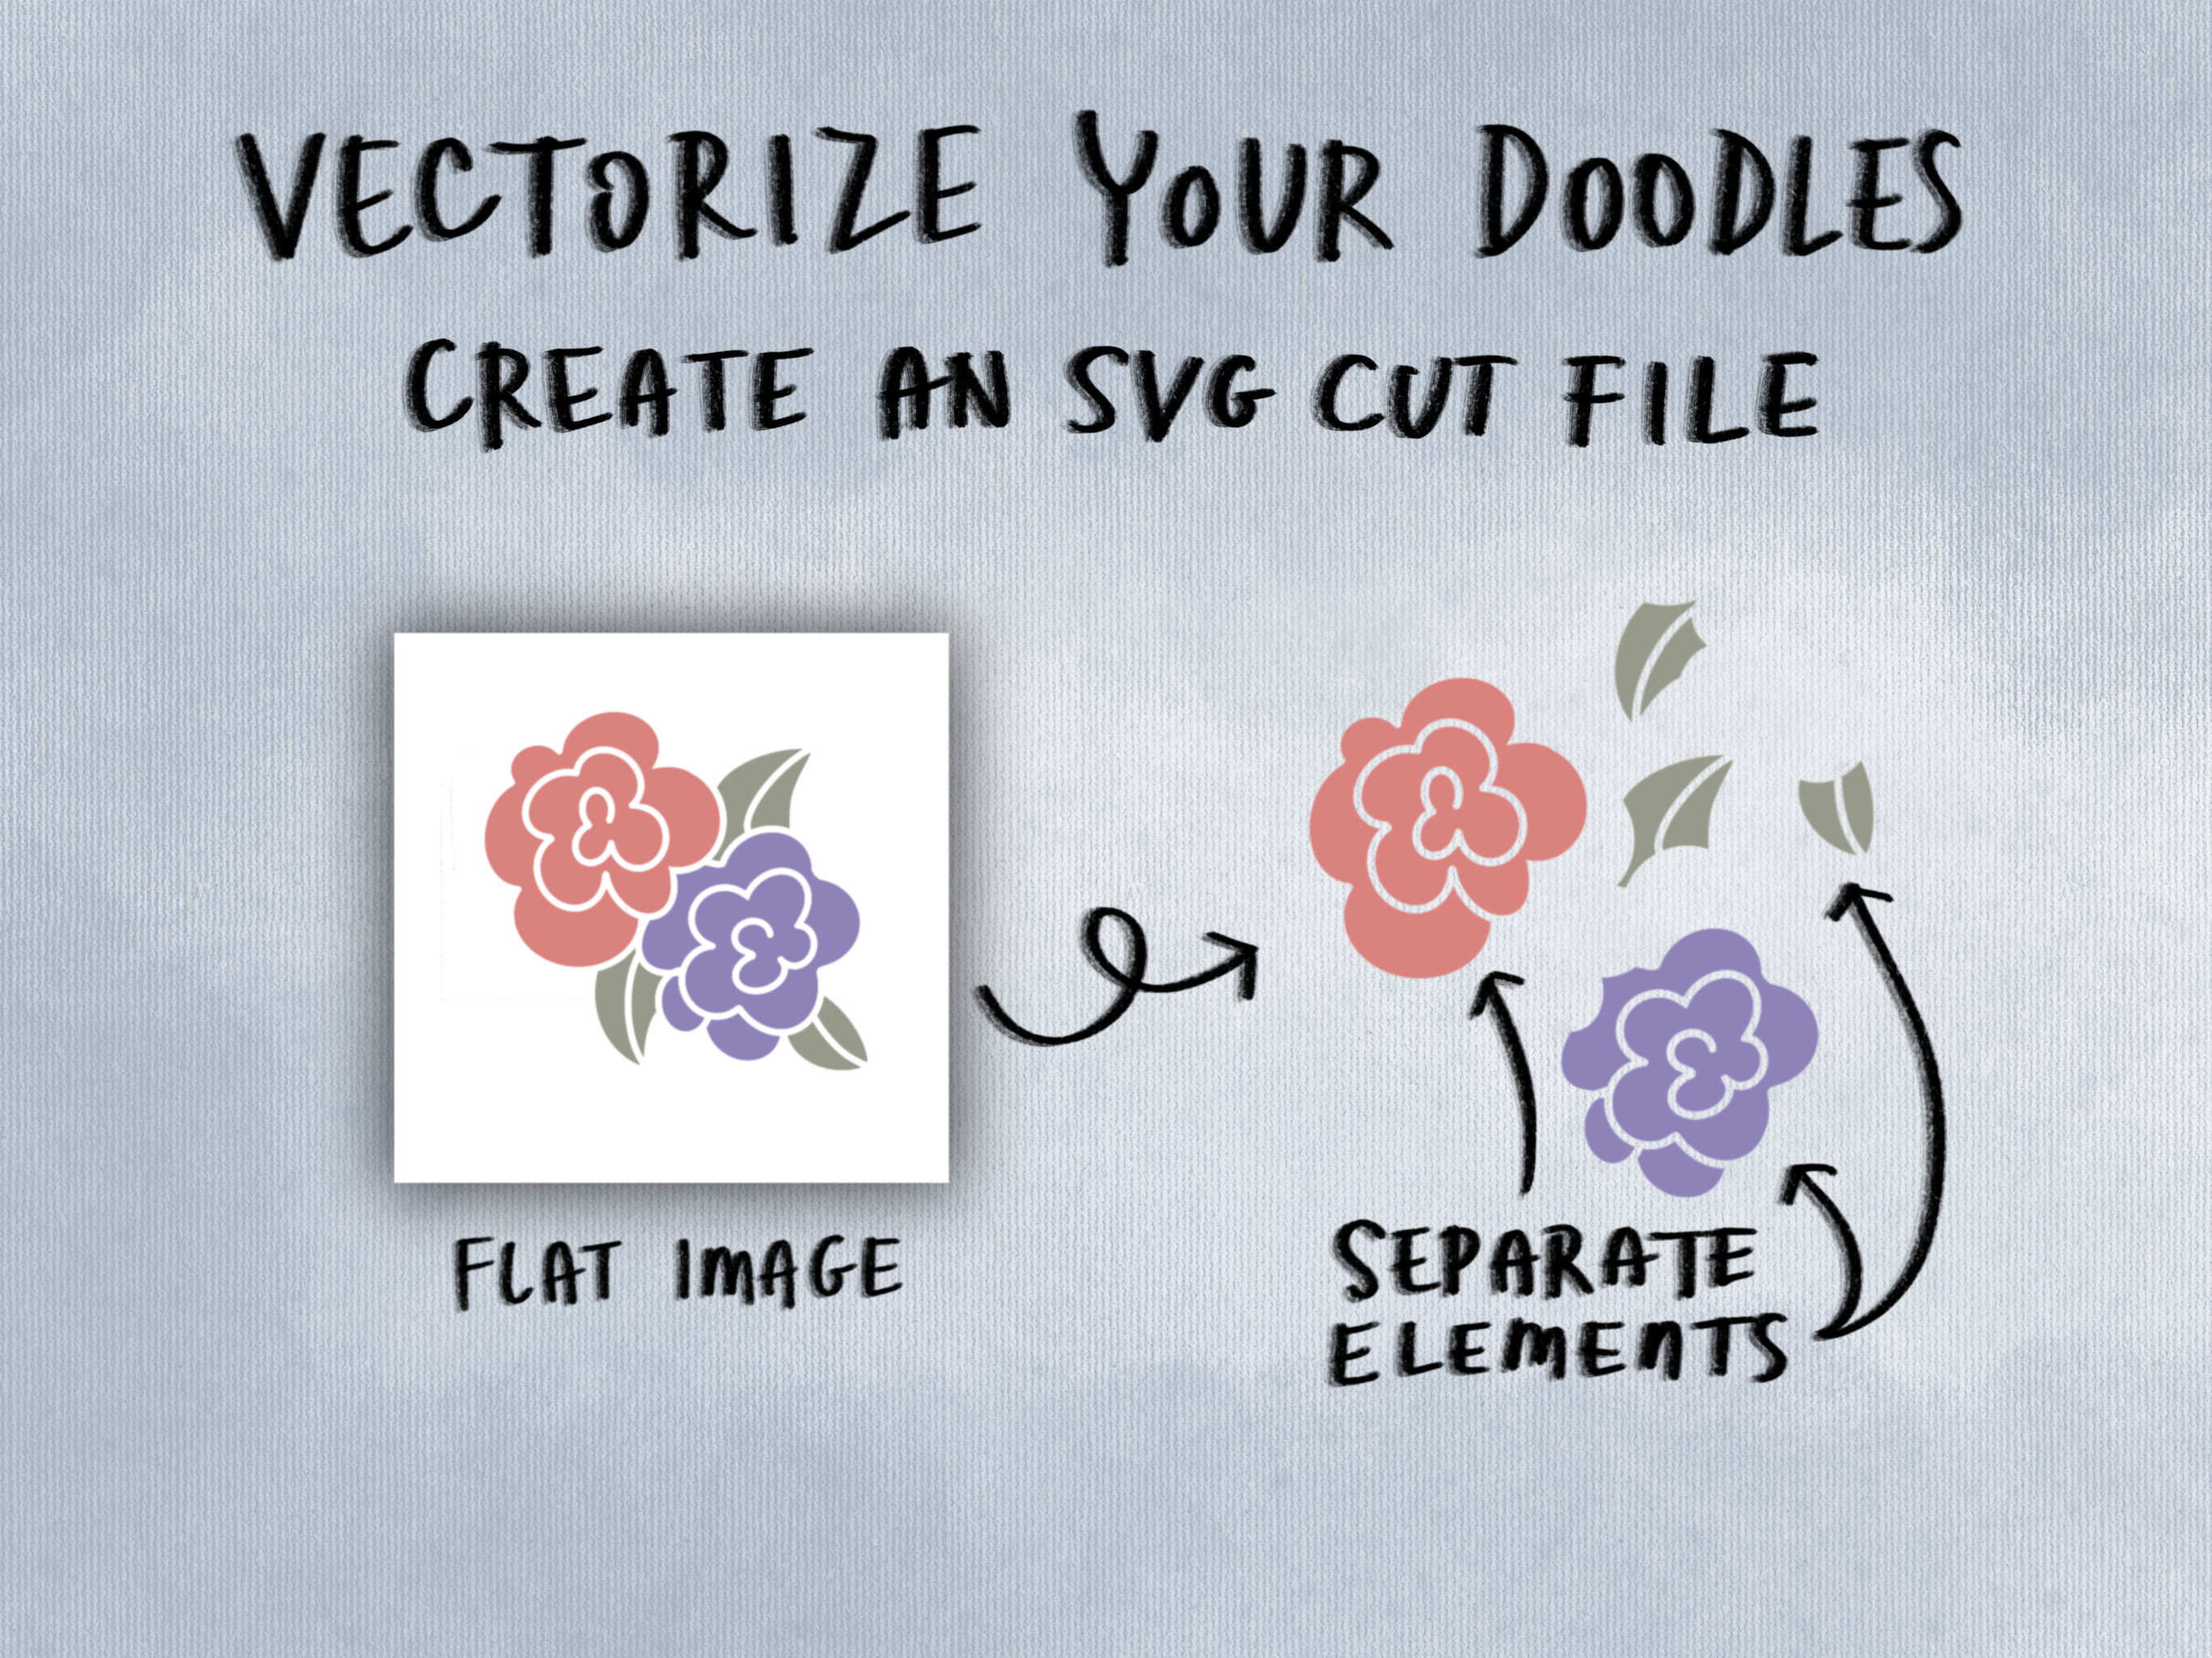 how to vectorize doodles, how to make svg cut files, how to use adobe illustrator, vectorize with adobe illustrator, free svg cut files